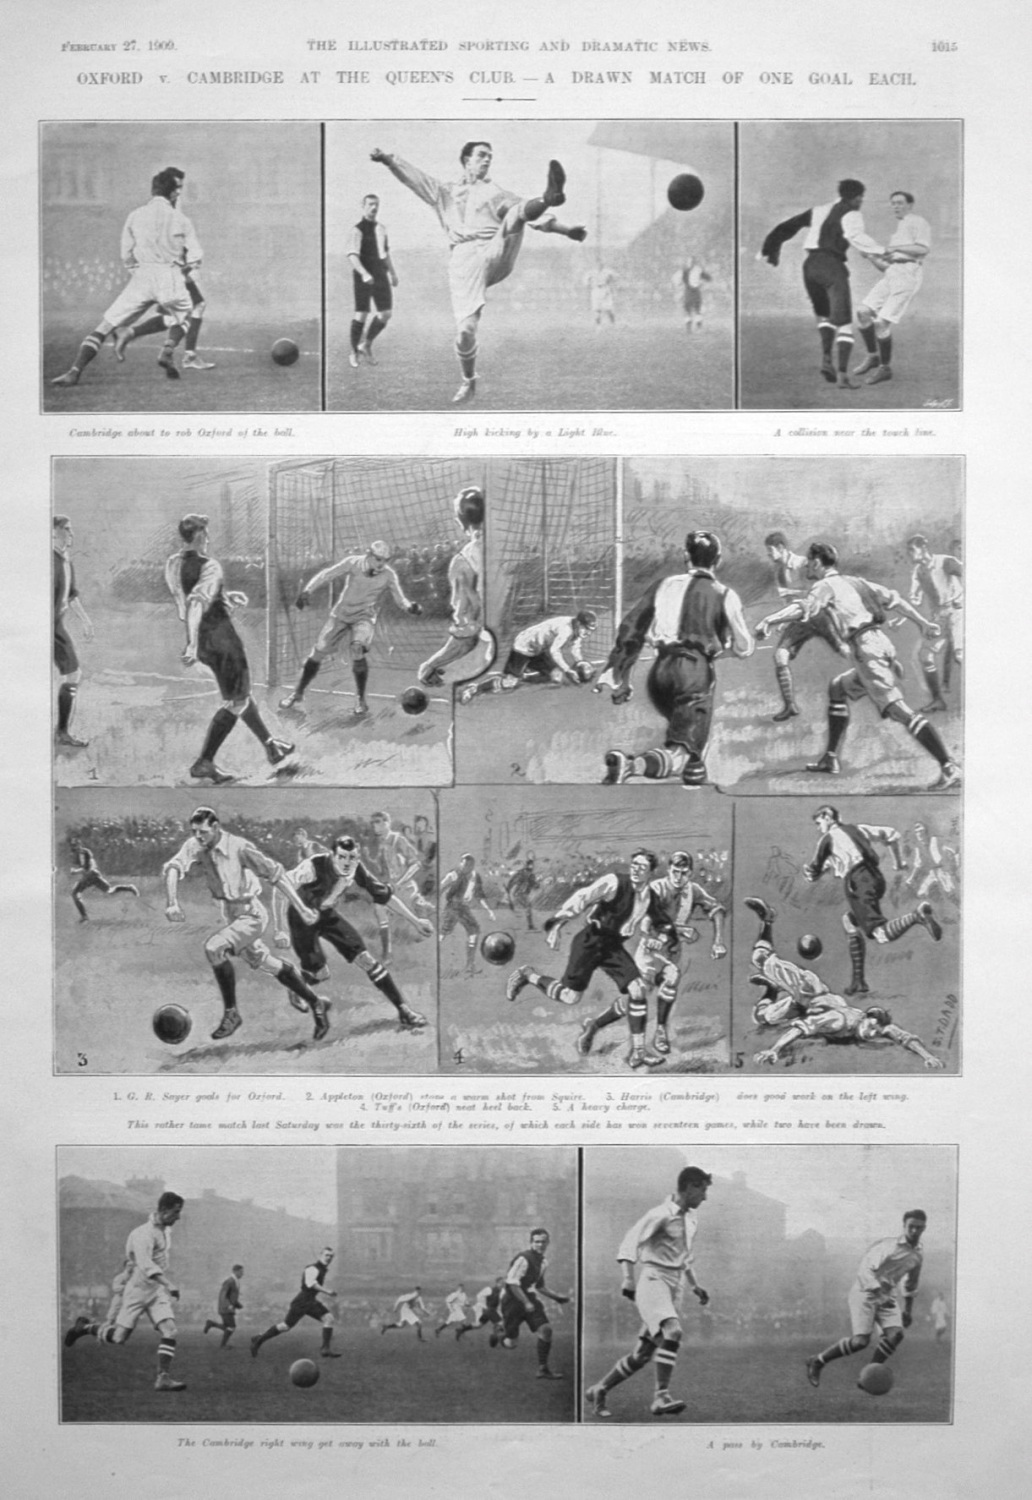 Oxford v. Cambridge at the Queen's Club. (Football). 1909